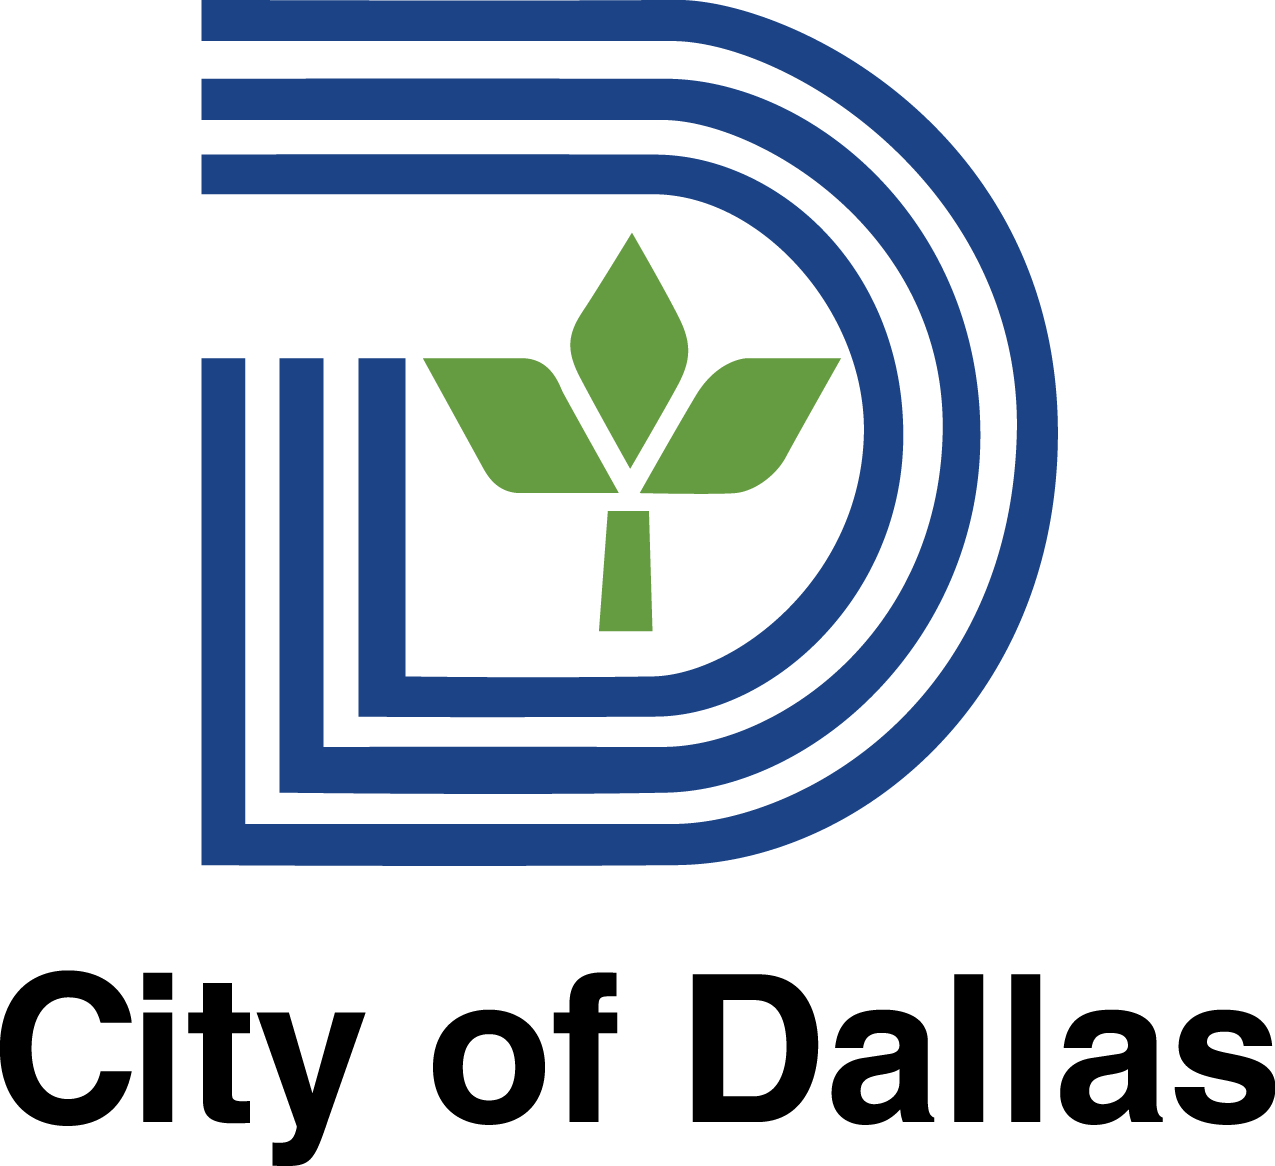 City of Dallas - Vertical - Full Color.png